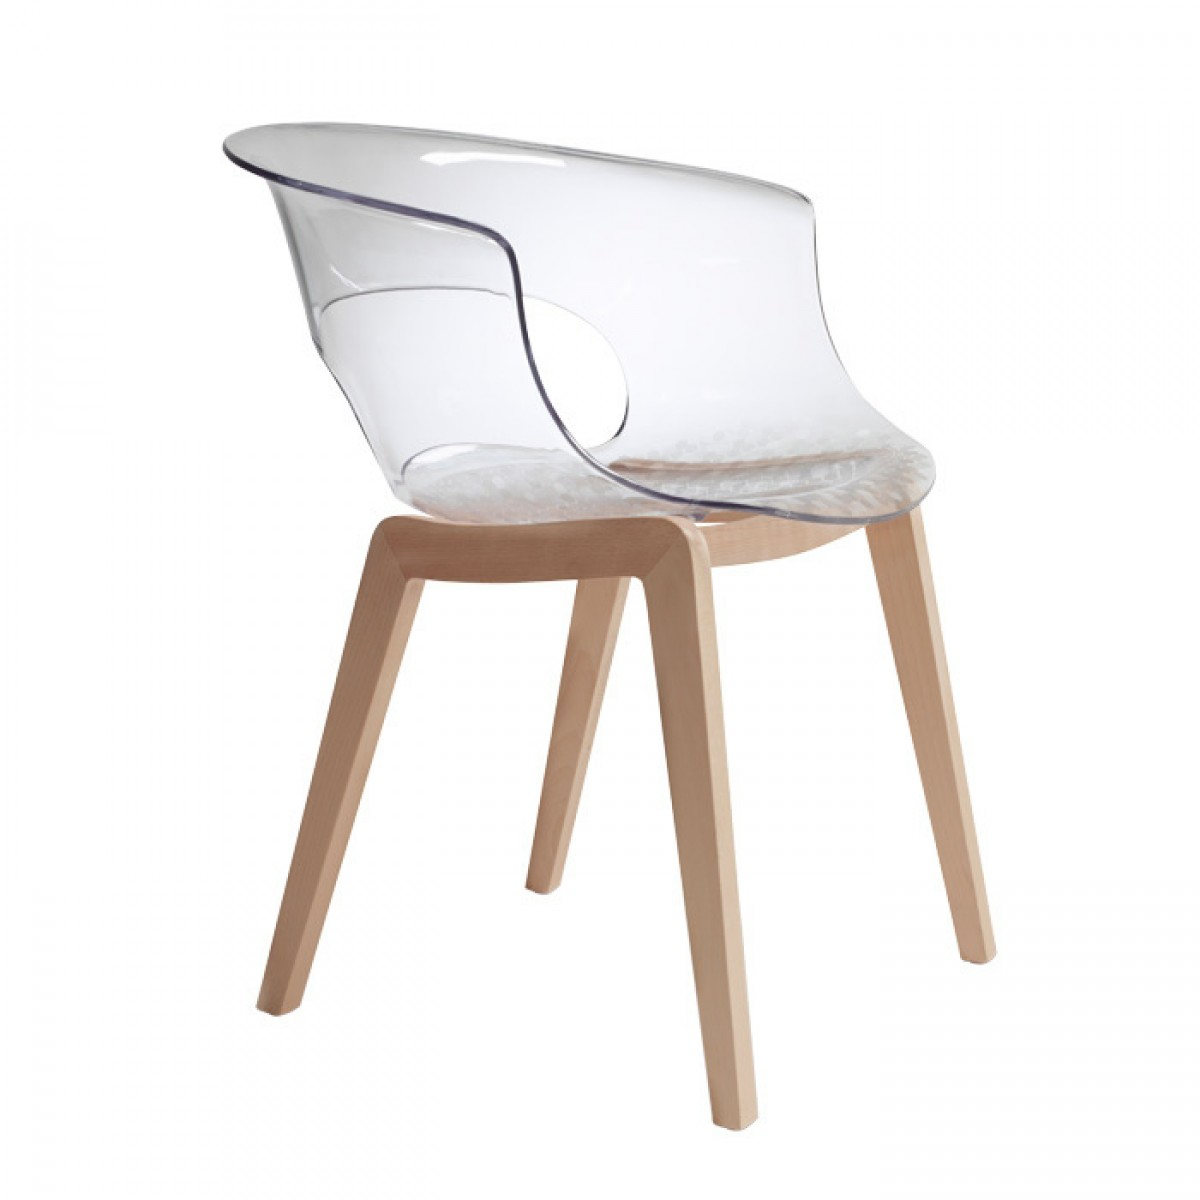 Natural beech frame. Shockproof polycarbonate body, available in translucent, smoked grey or solid white colour. Also available in the new version with fixed fabric seat cushion.